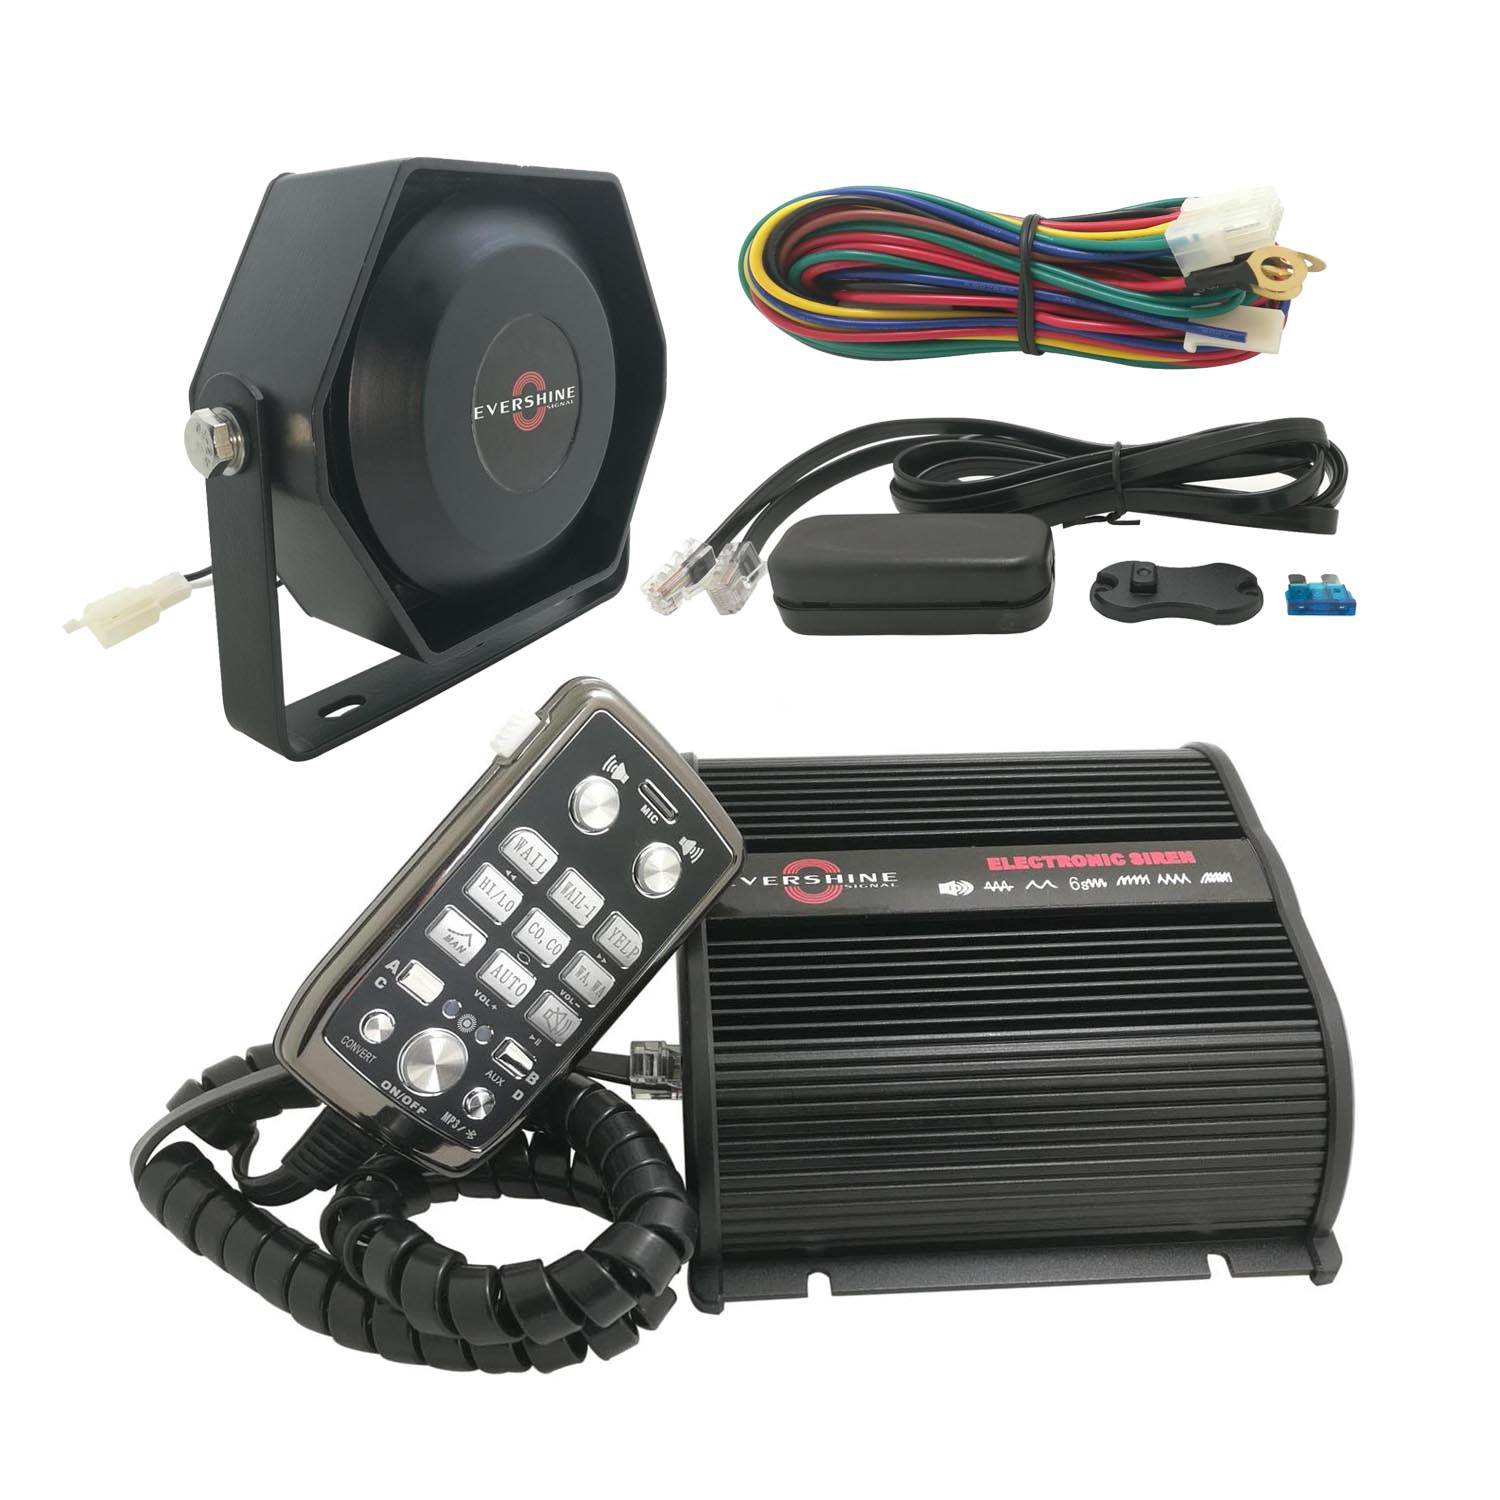 150W Police Siren Bundle with Speaker Remote Microphone Bluetooth Can Play Custom-made Sounds